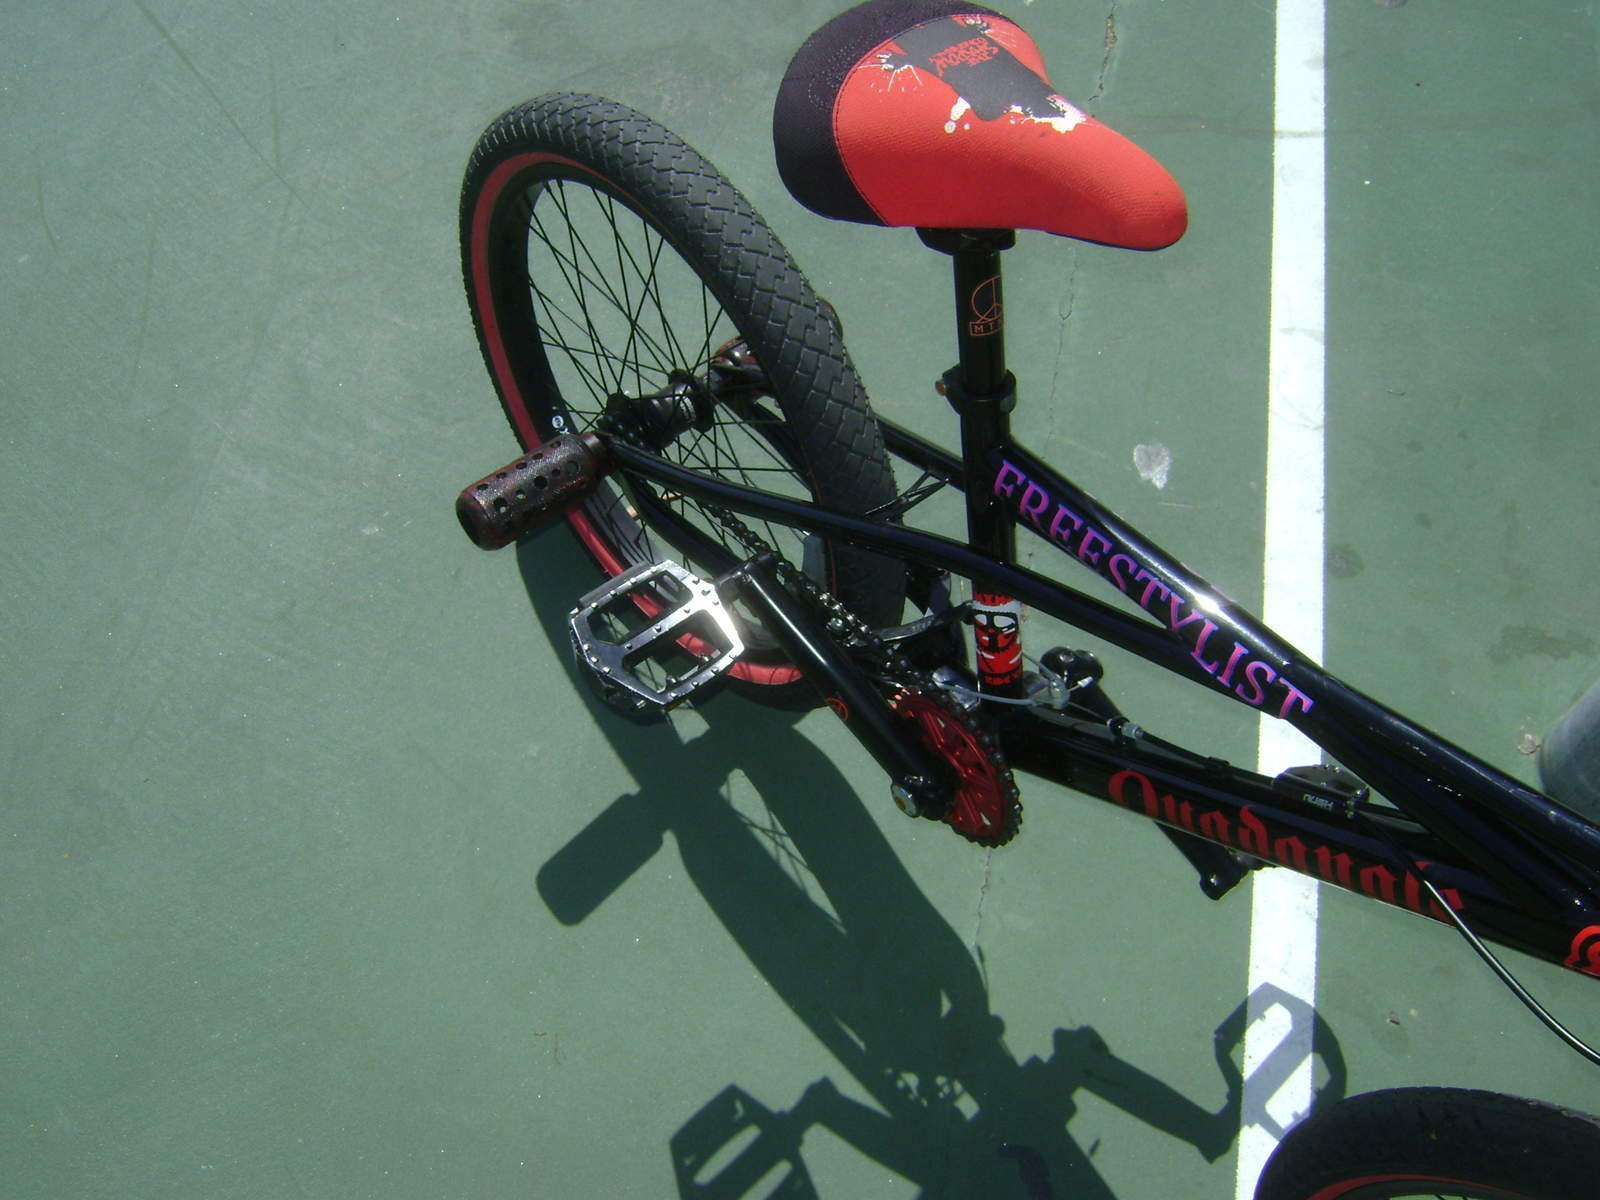 http://uploads.bmxmuseum.com/user-images/6905/dsc000245becac17da.jpg